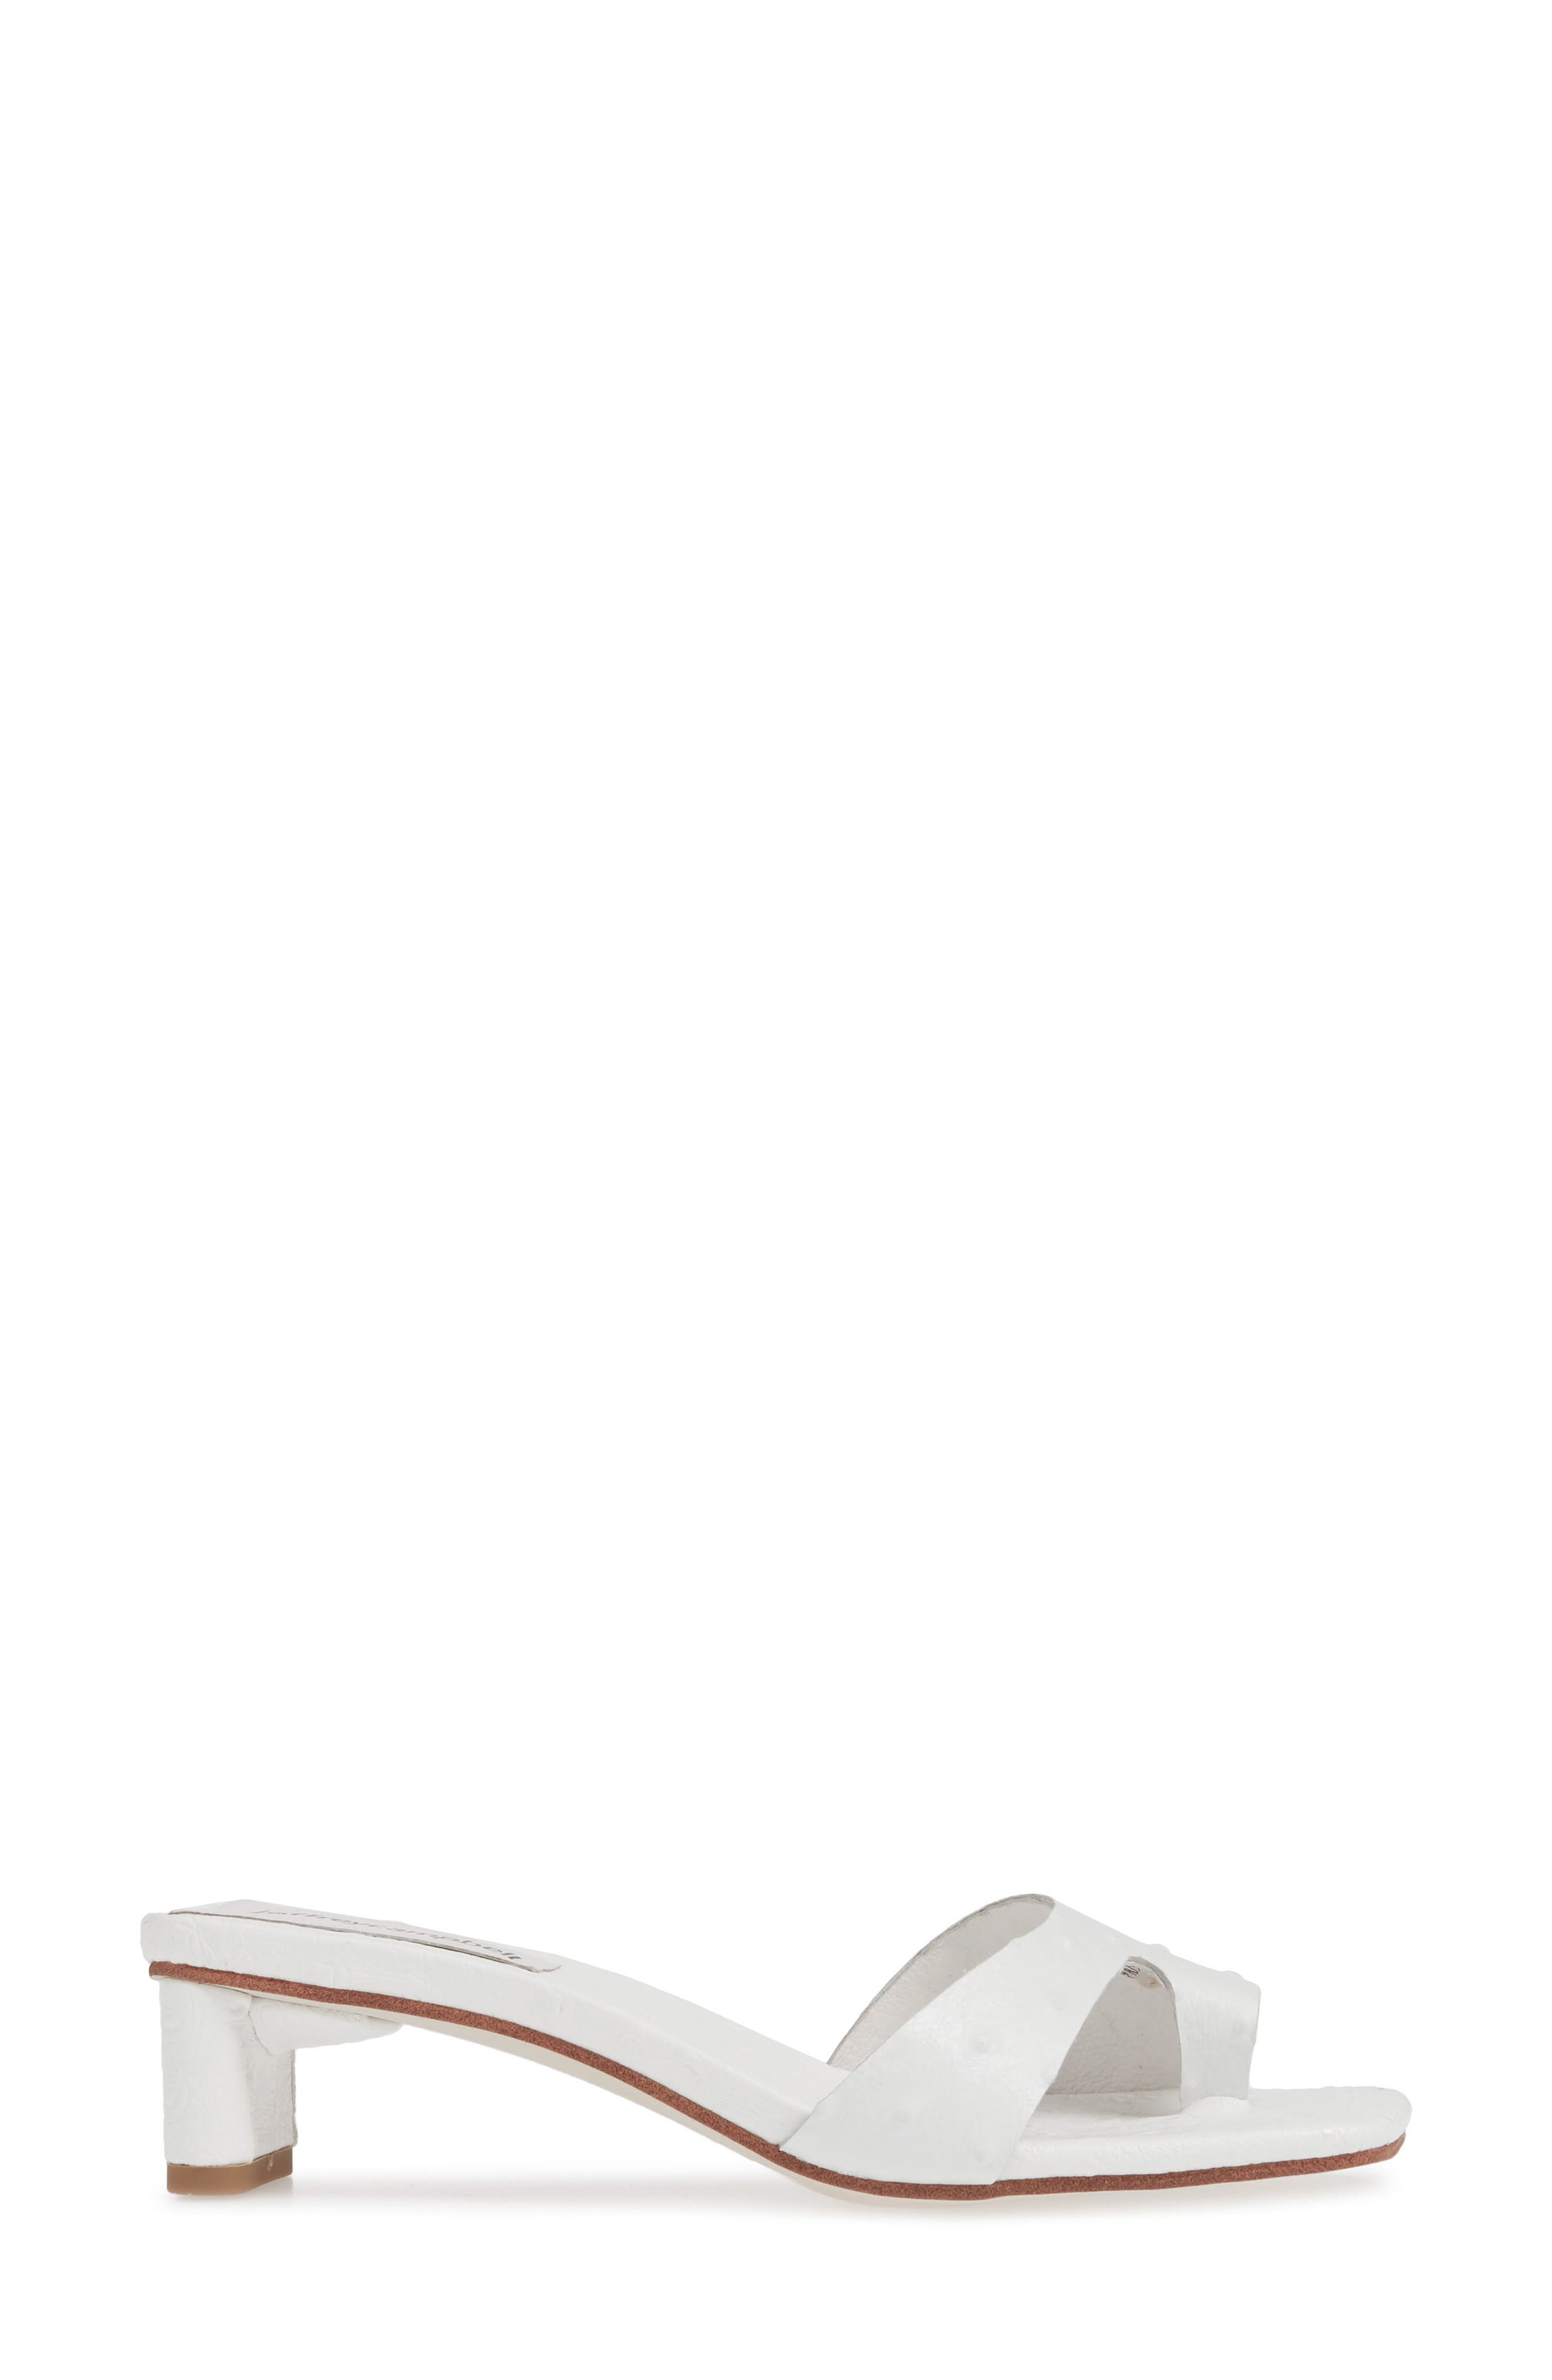 JEFFREY CAMPBELL, Teclado Slide Sandal, Alternate thumbnail 3, color, 121